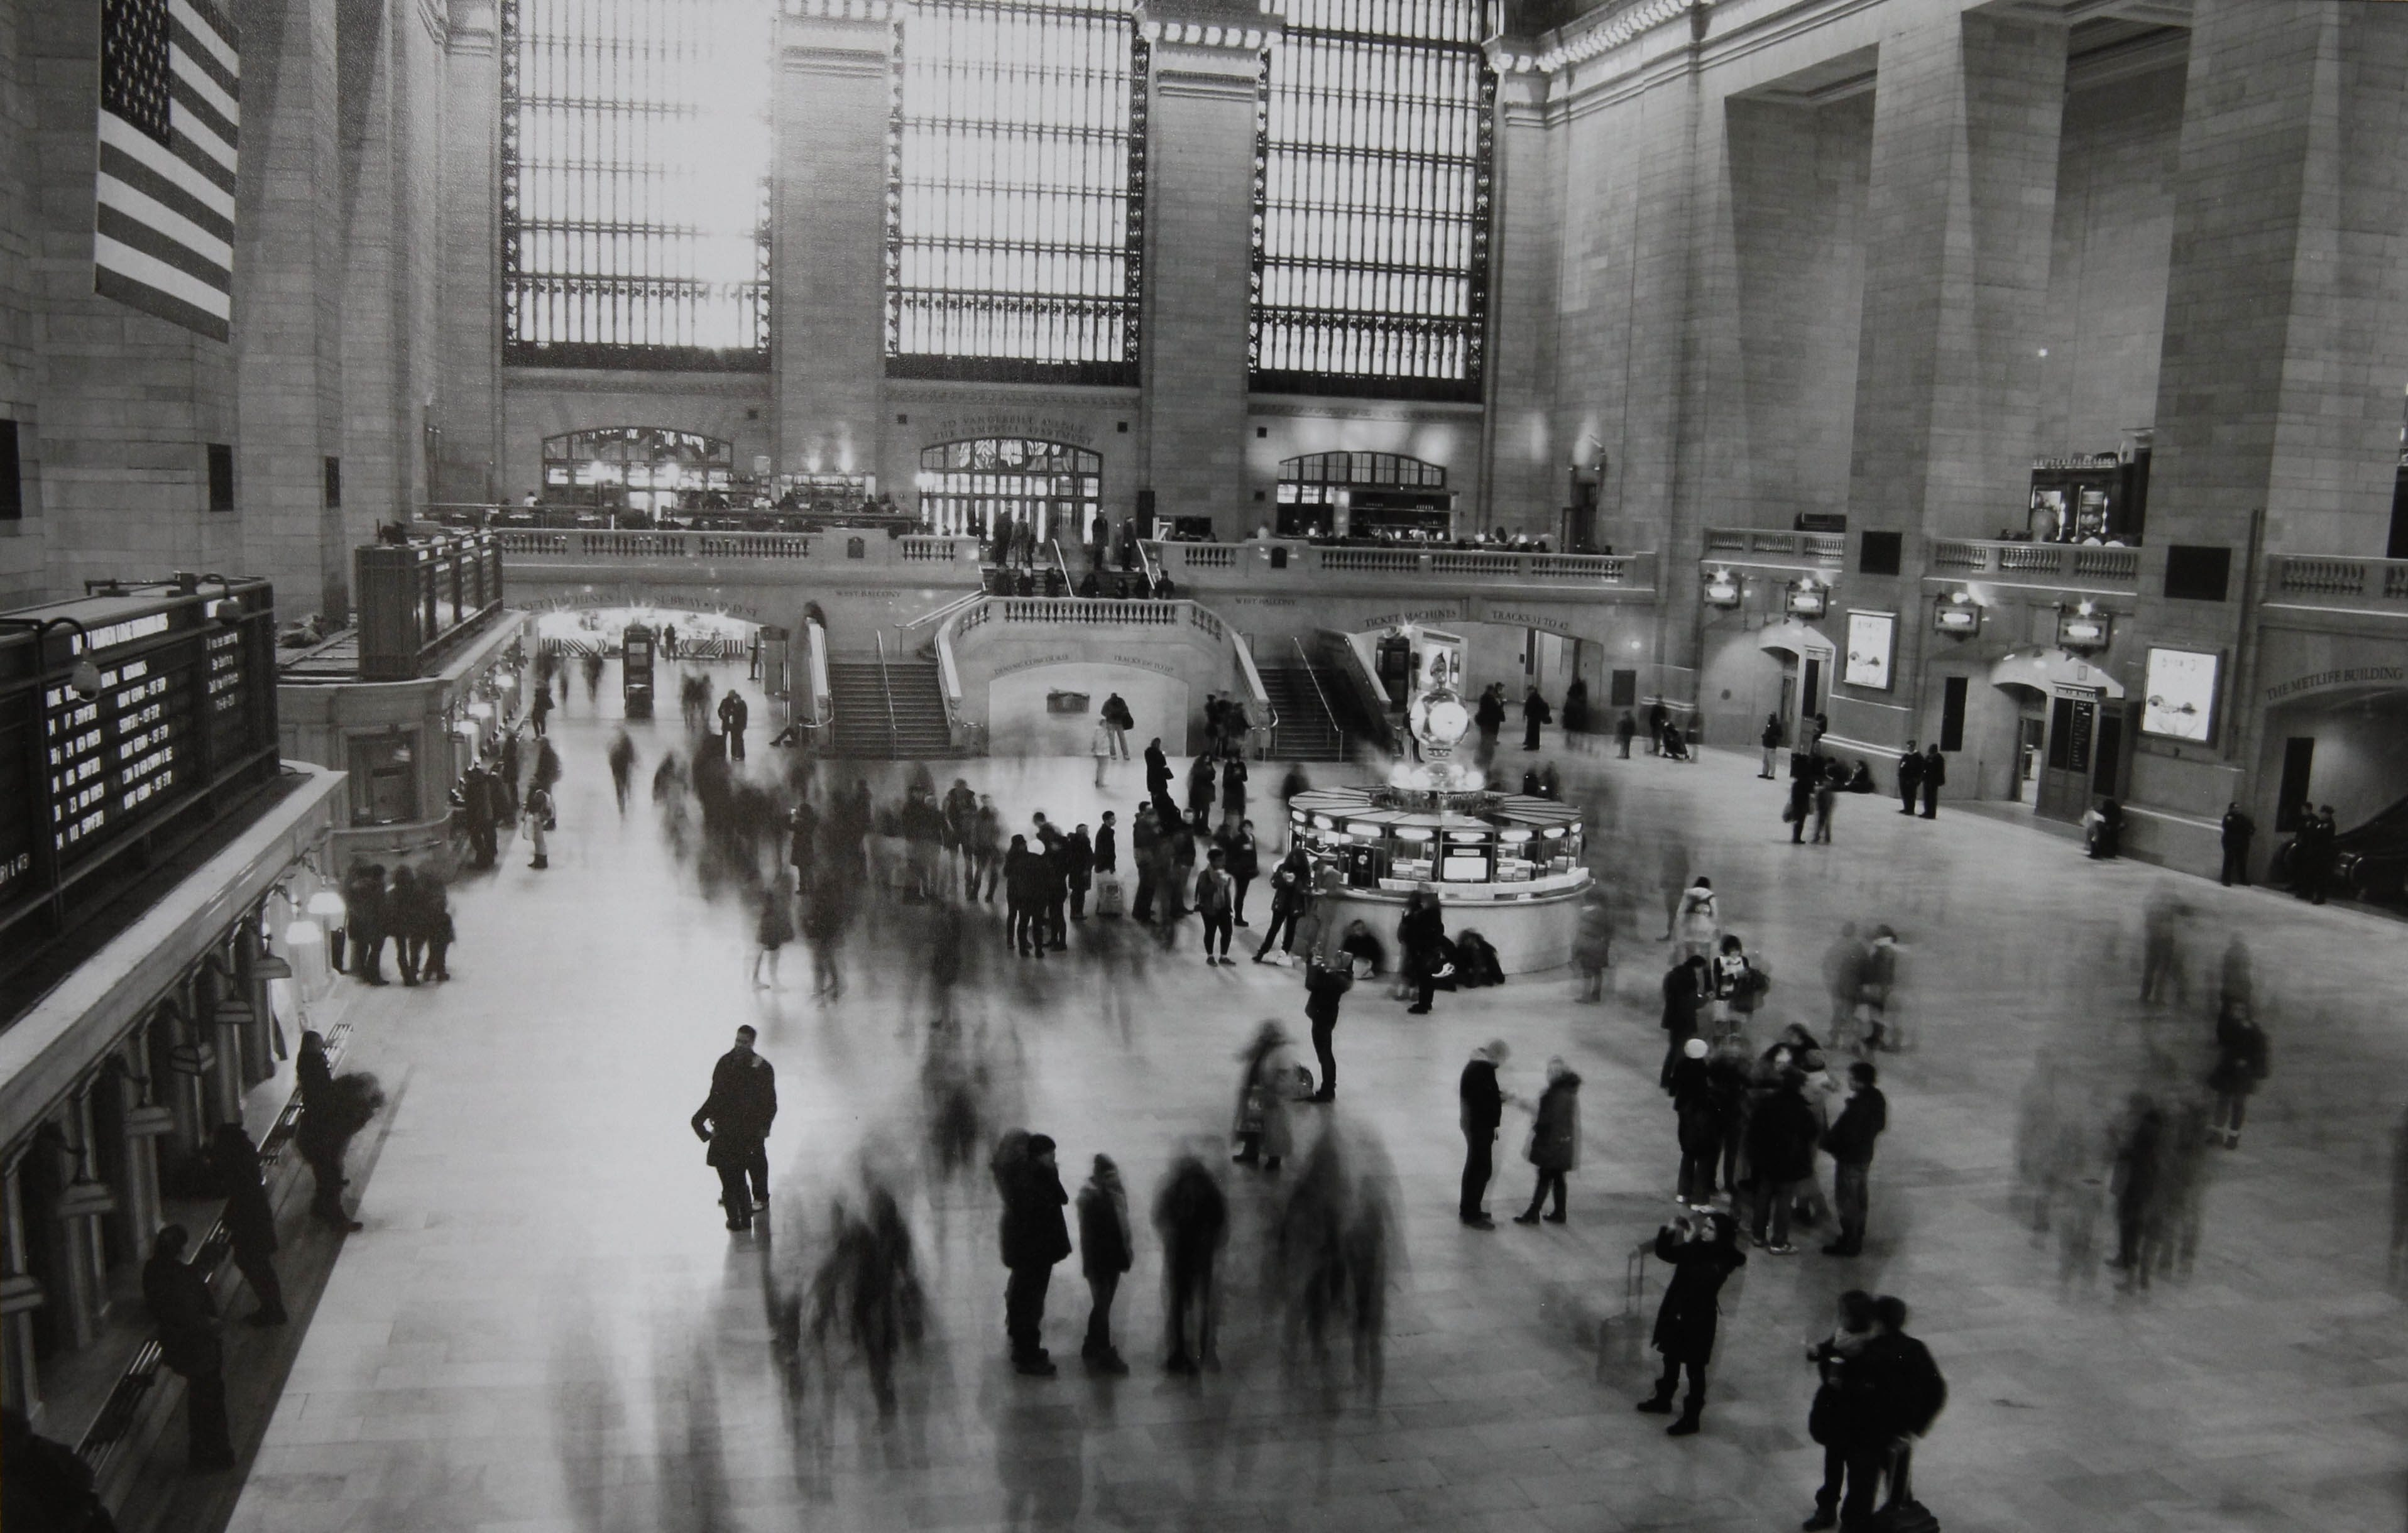 """Best Photojournalism/Documentary Award:  """"Grand Central,"""" ALLIE SCUMACI, Williamsville East High School   Allie Scumaci, Williamsville East High School Grade 10  """"Grand Central"""" with  the Best Photojournalism/Documentary Award in 2014 Storrs All-High Photo Show at the  Kenan Center   in Lockport, N.Y. on Friday, April 4, 2014.   (John Hickey / Buffalo News)"""